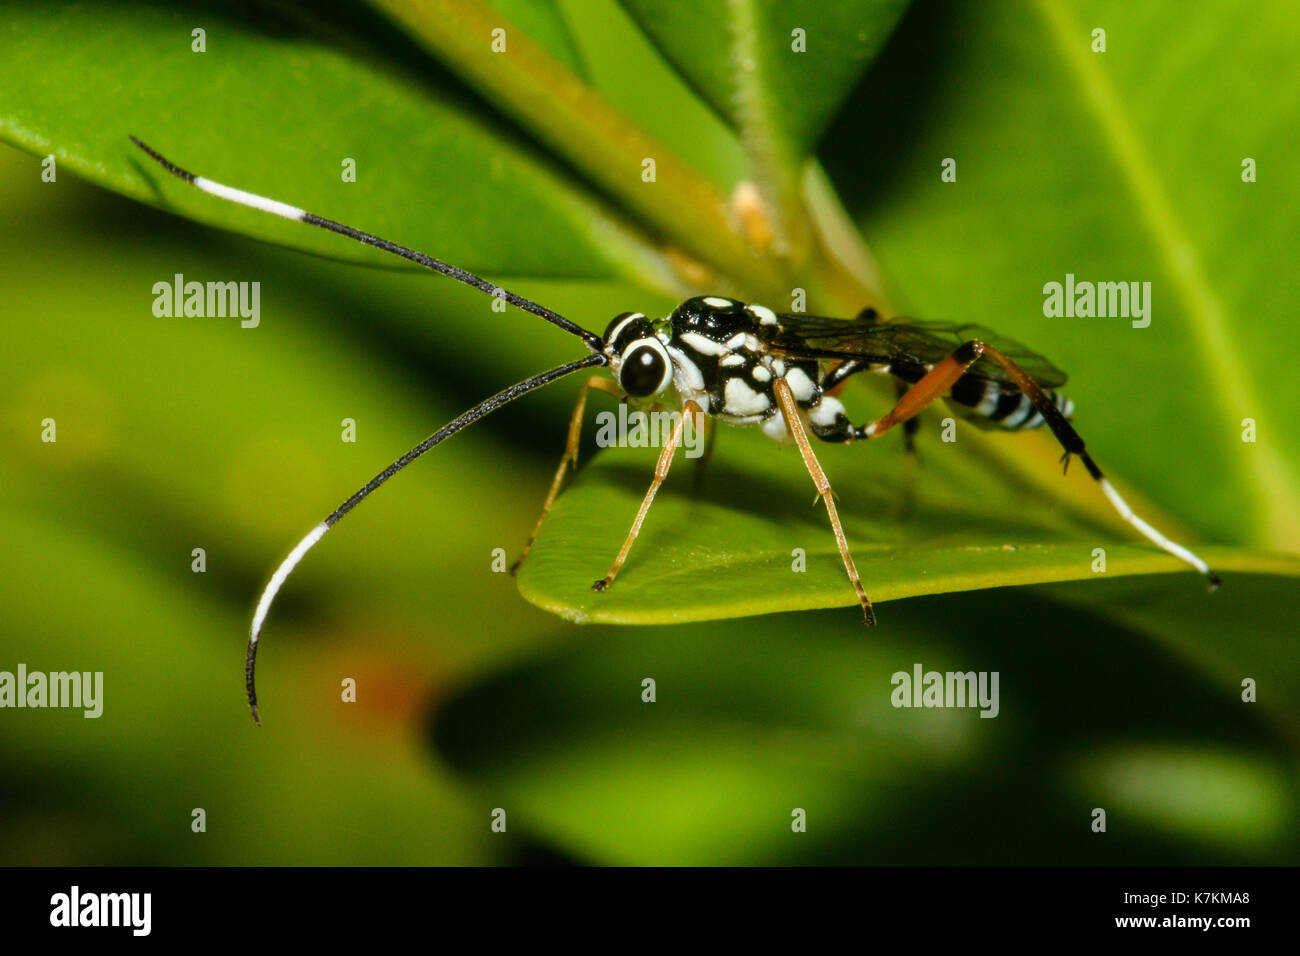 Black and White Striped Ichneumon Wasp. - Stock Image